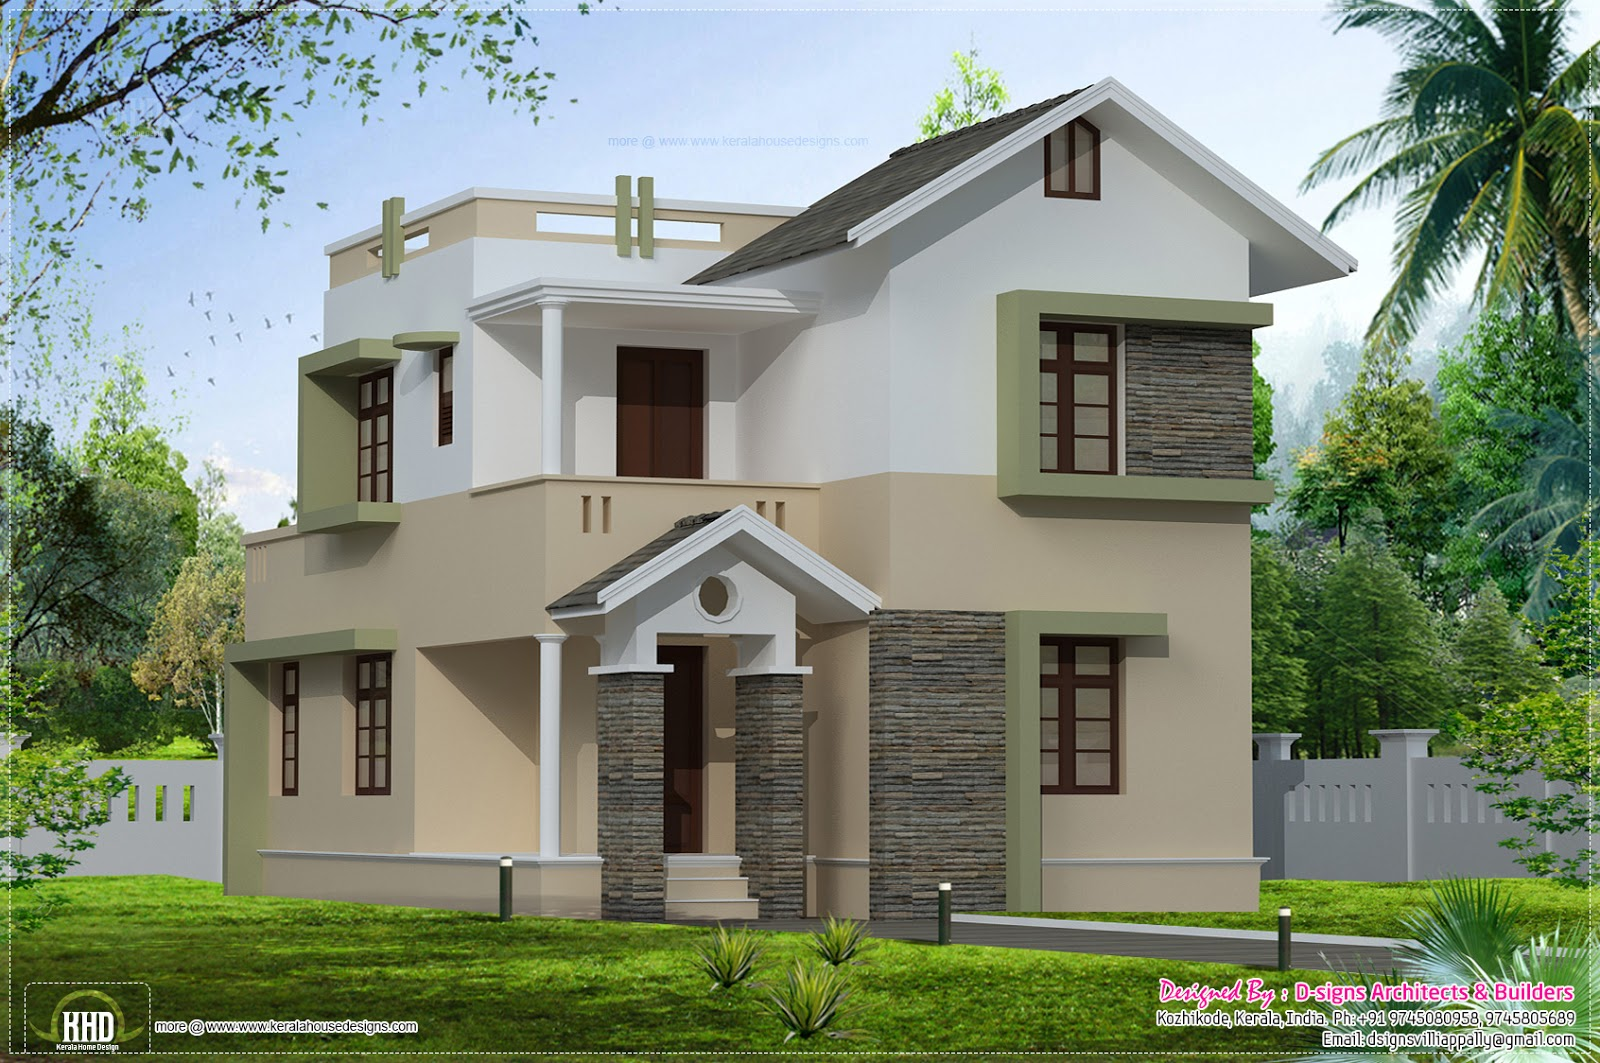 Small Villa Plans Houses Plans Designs